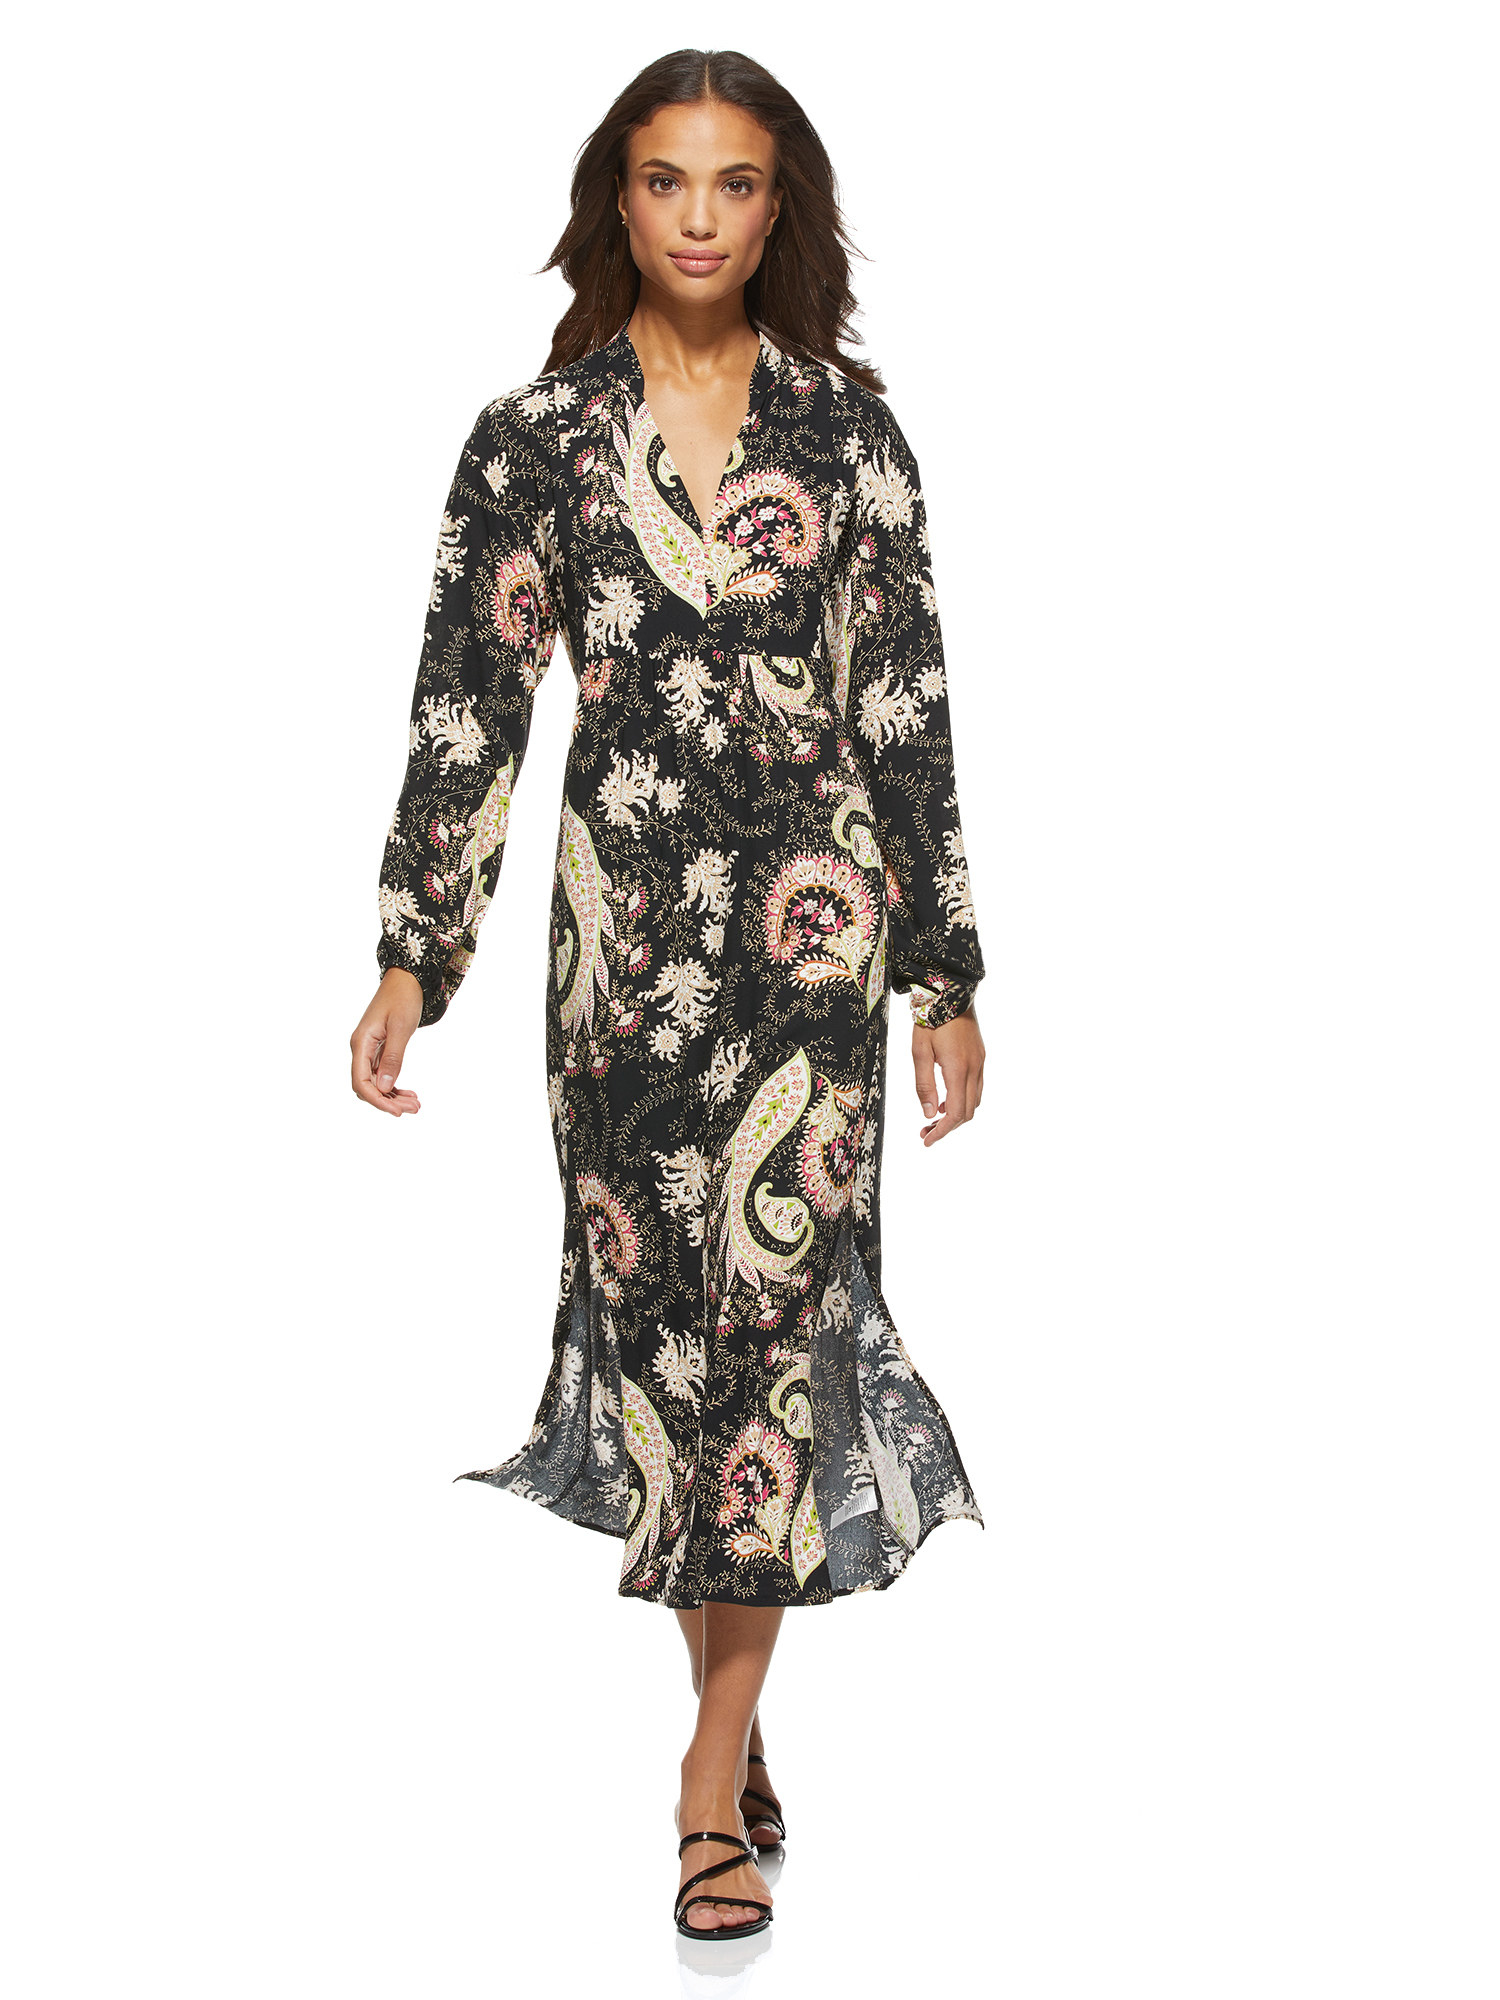 The black and cream paisley-printed midi dress